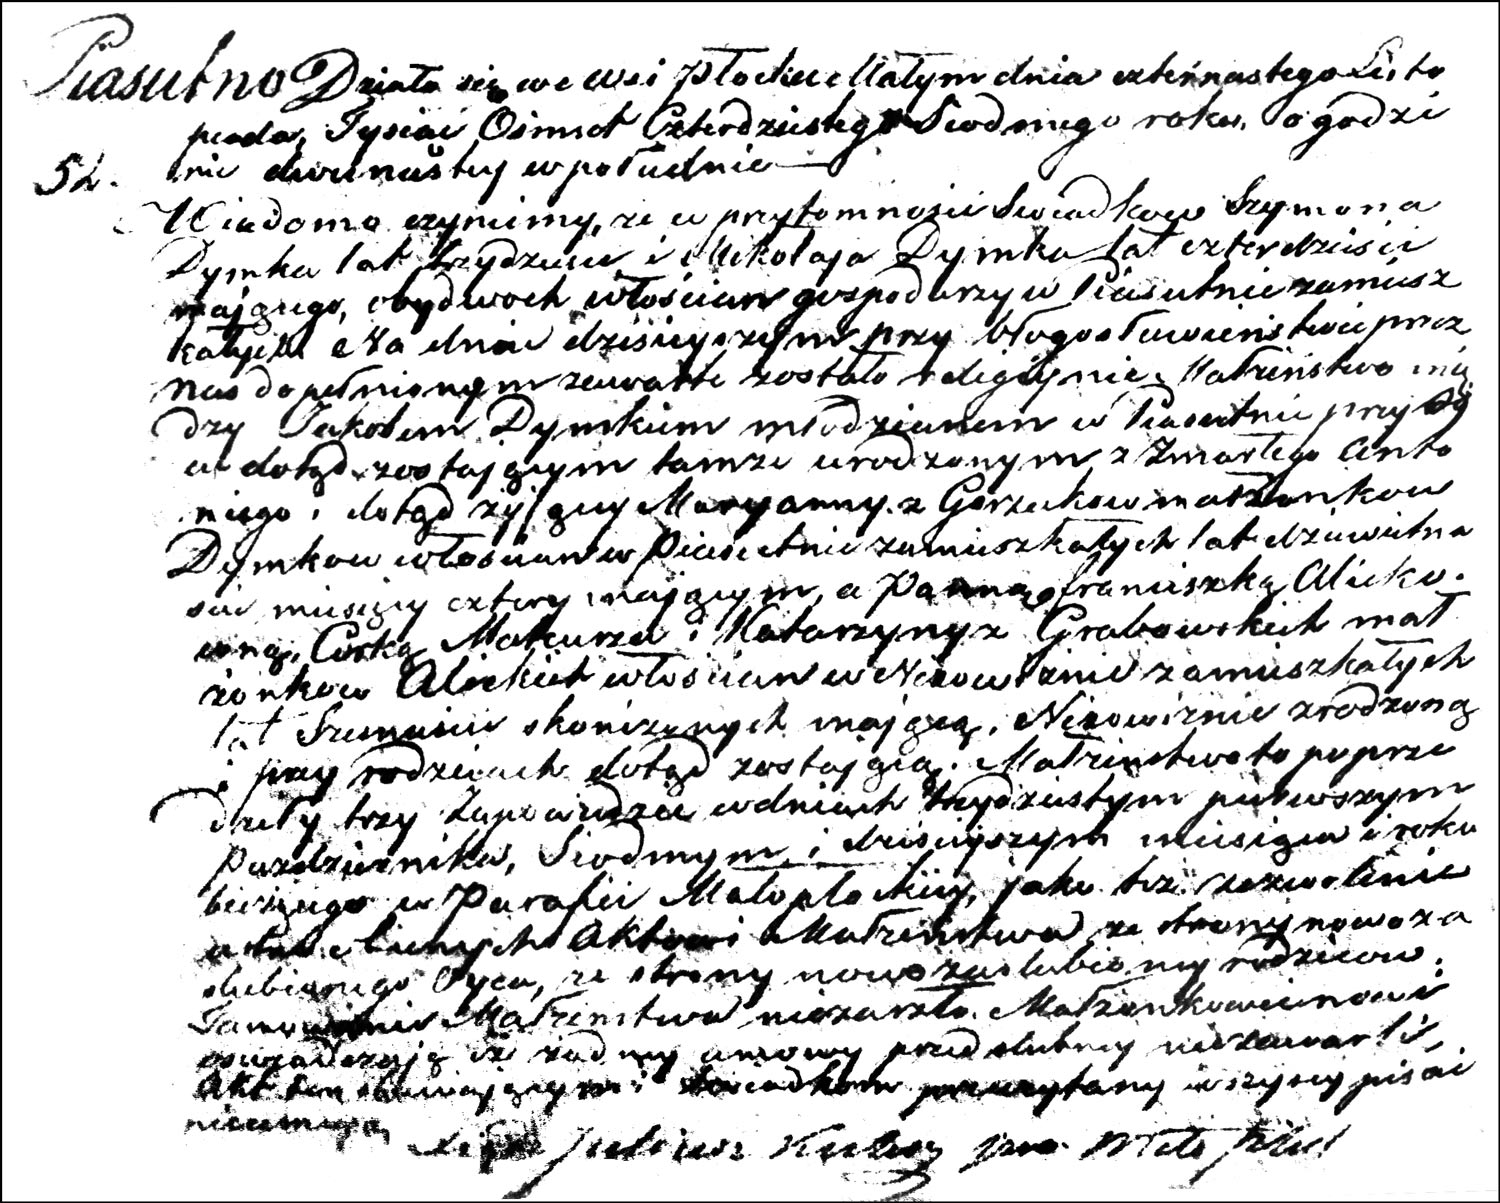 The Marriage Record of Jakób Dymek and Franciszka Alicka – 1847